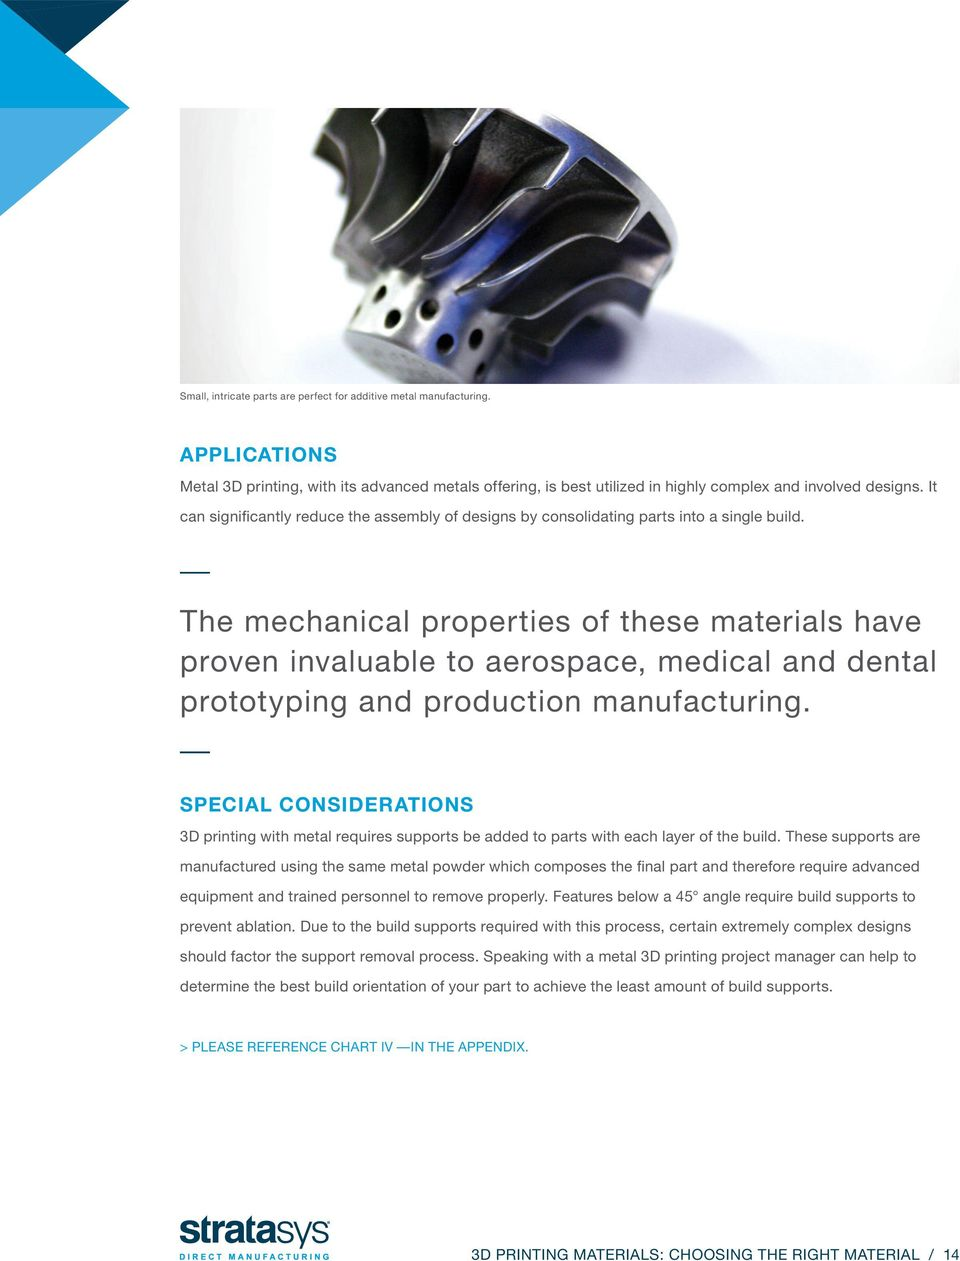 The mechanical properties of these materials have proven invaluable to aerospace, medical and dental prototyping and production manufacturing.